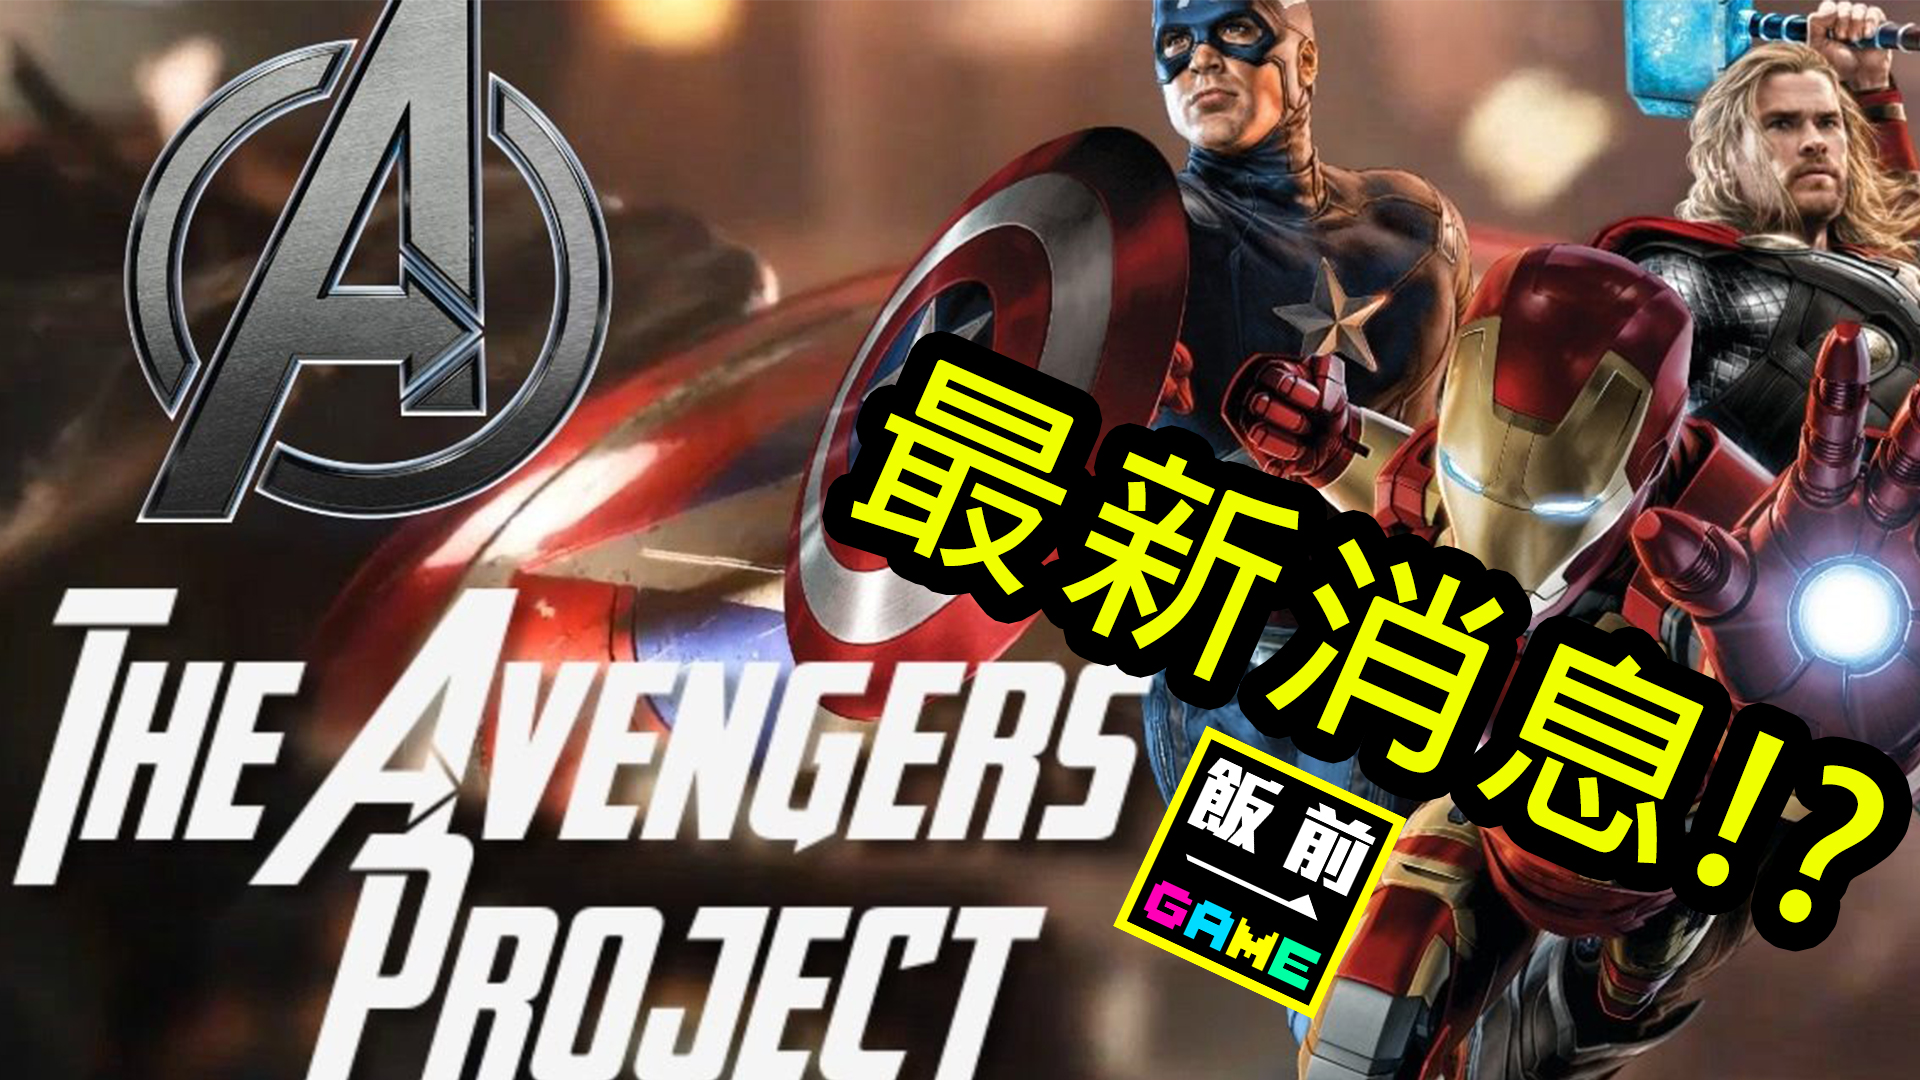 The Avengers Project 新消息!?】